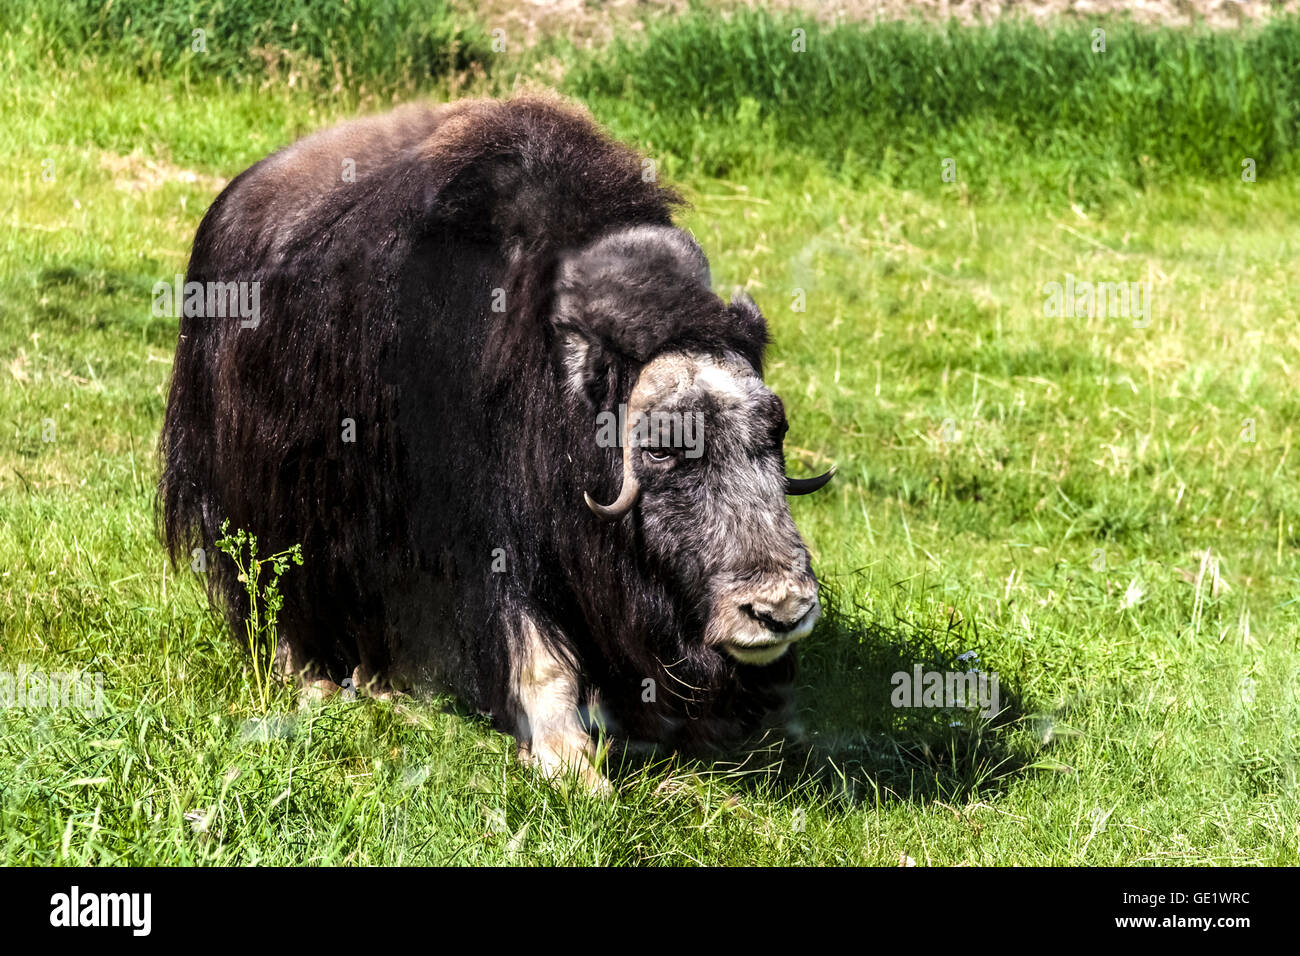 The muskox is a large hairy Arctic mammal noted for its thick fur coat - Stock Image